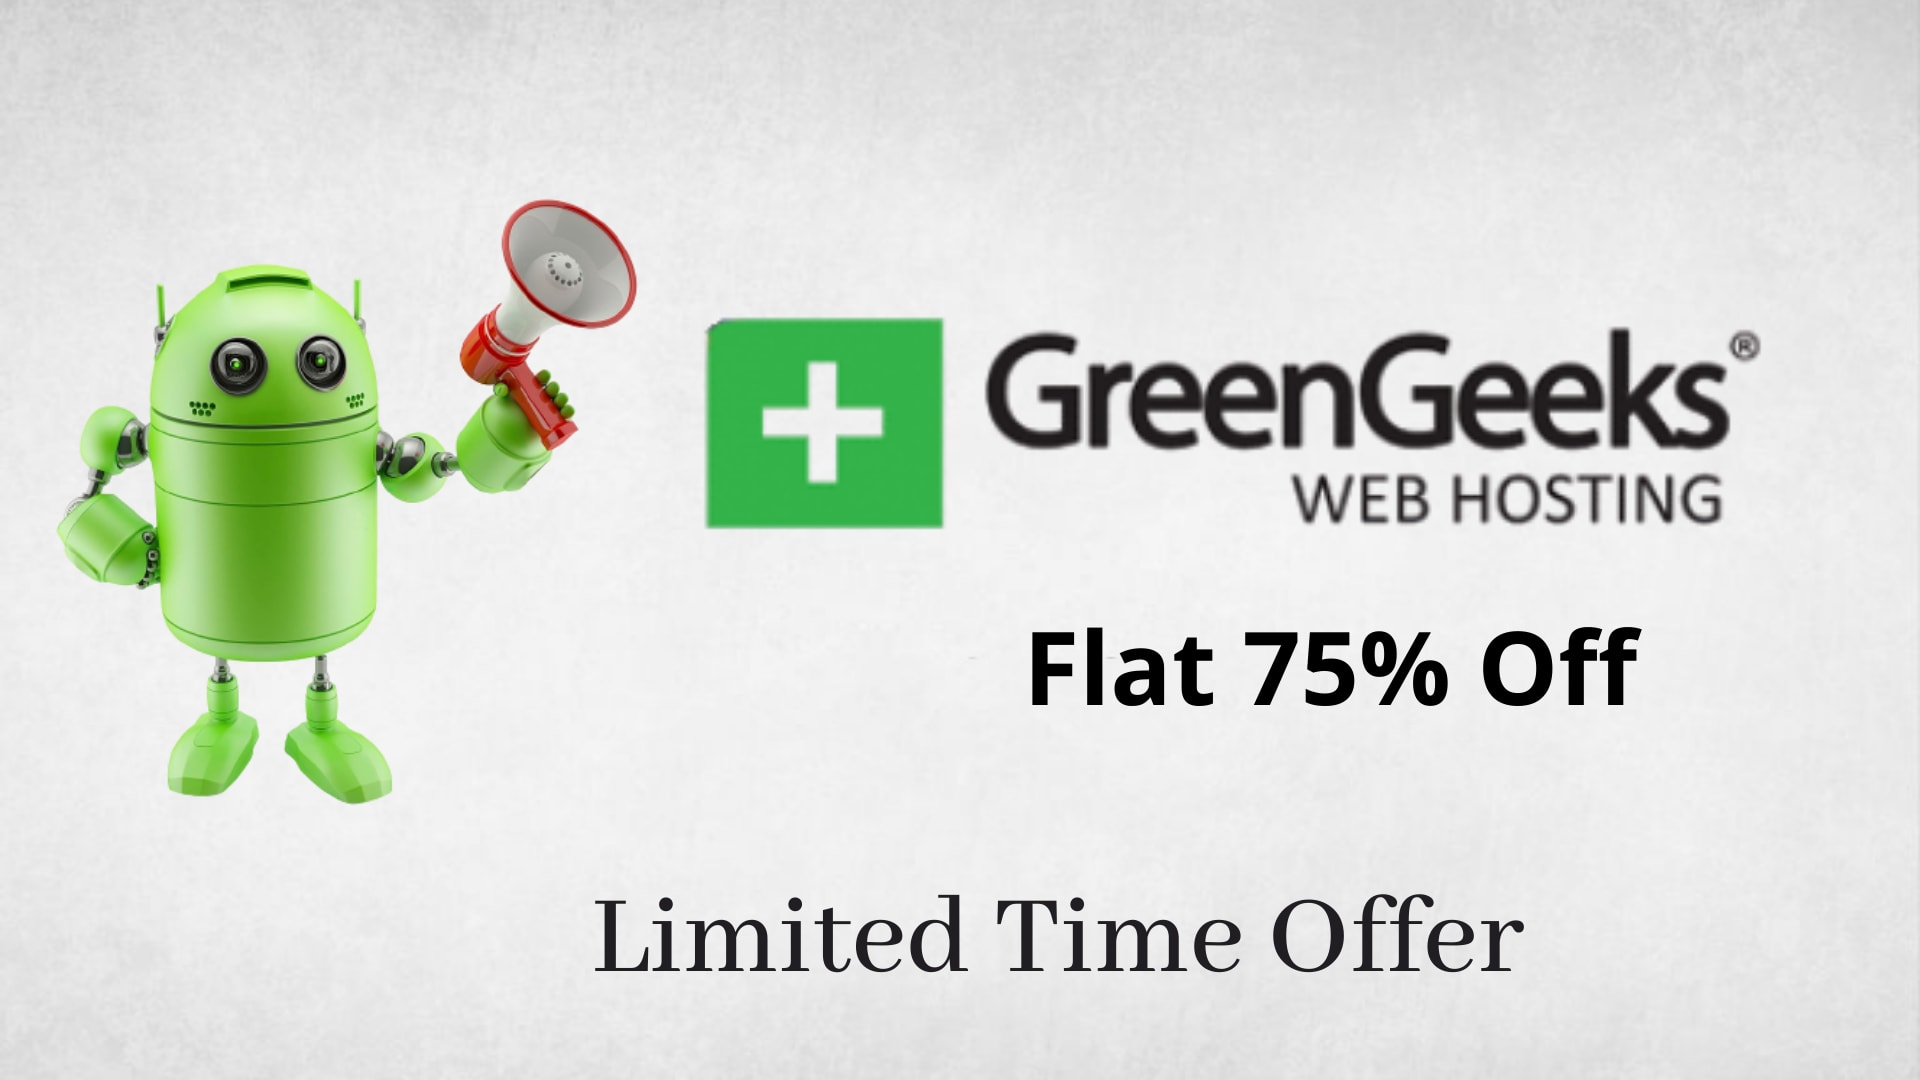 GreenGeeks Black Friday 2020 - Top 10 Black Friday Hosting Deals 2020